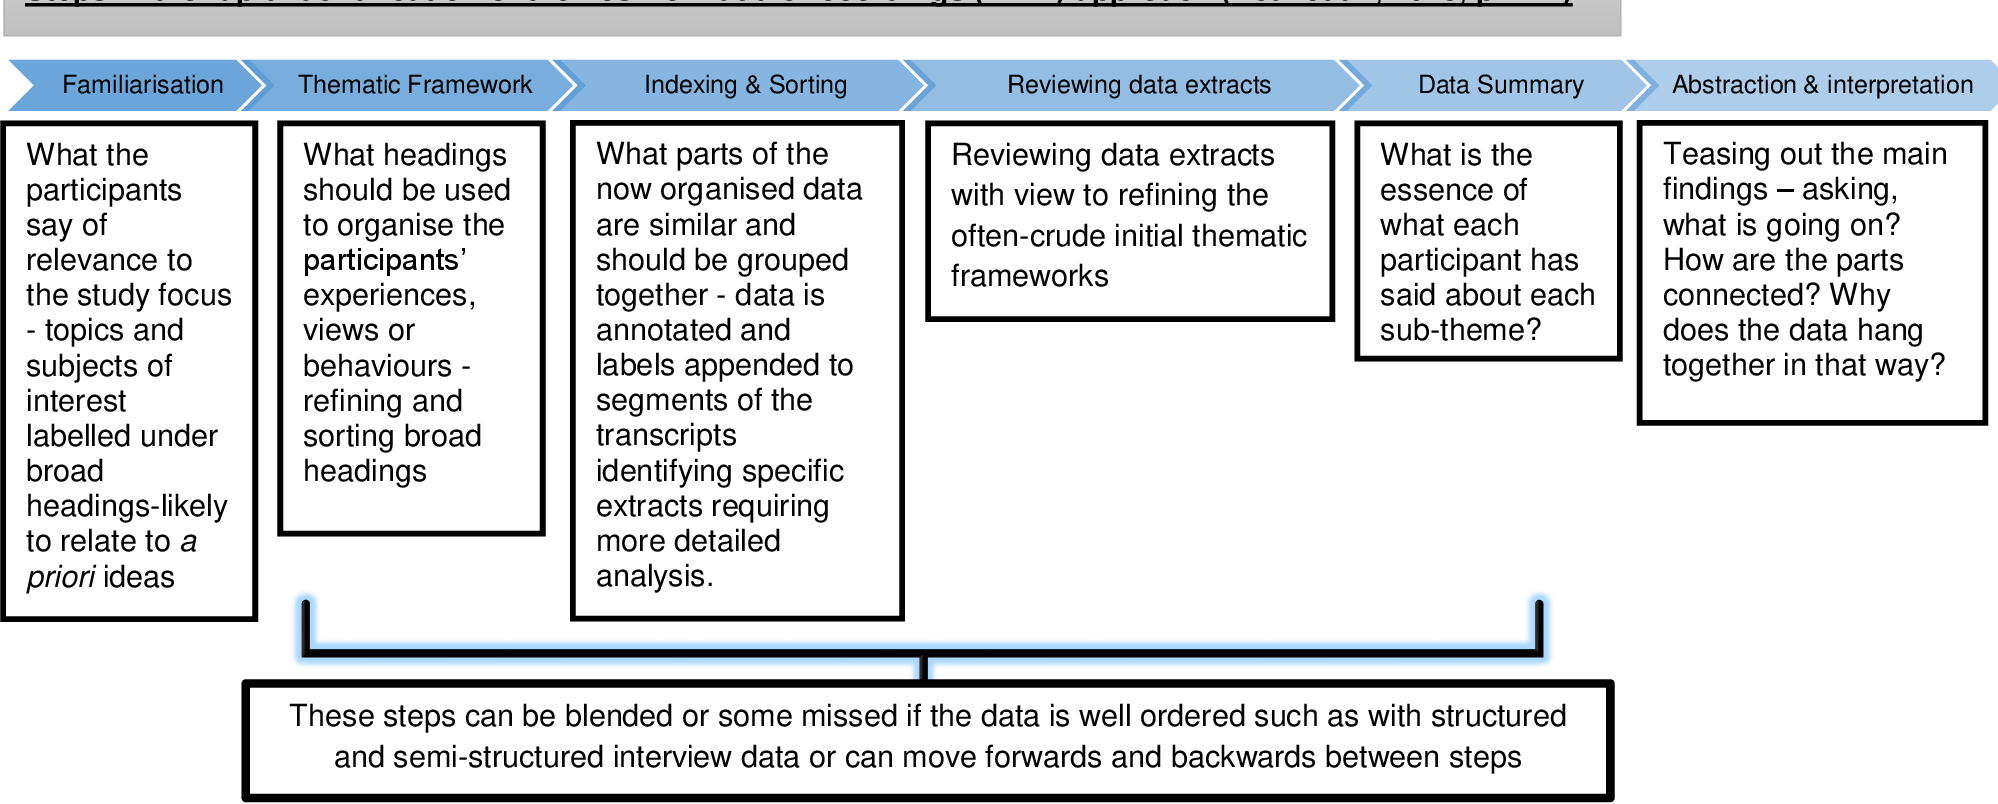 Figure 3 7 from An Exploration of Students' Learning Journey